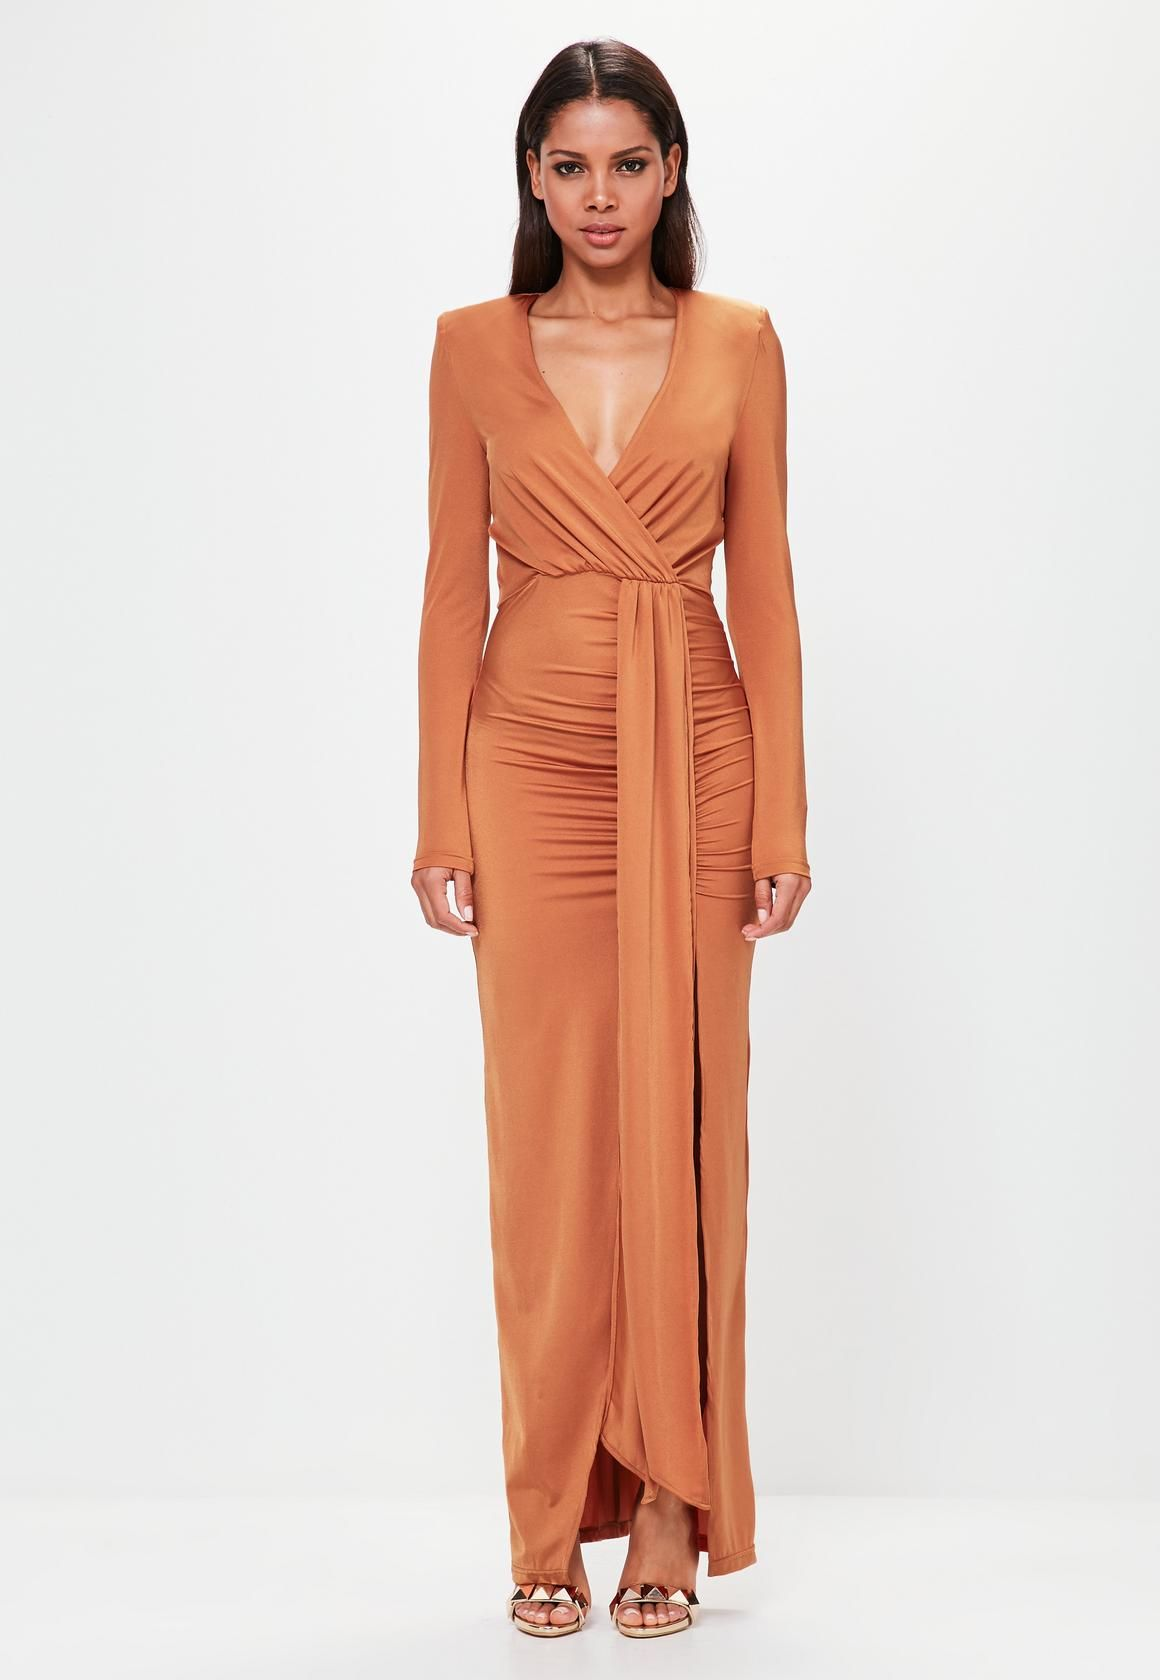 Missguided Orange Long Sleeve Wrap Maxi Dress | Missguided, Maxi ...